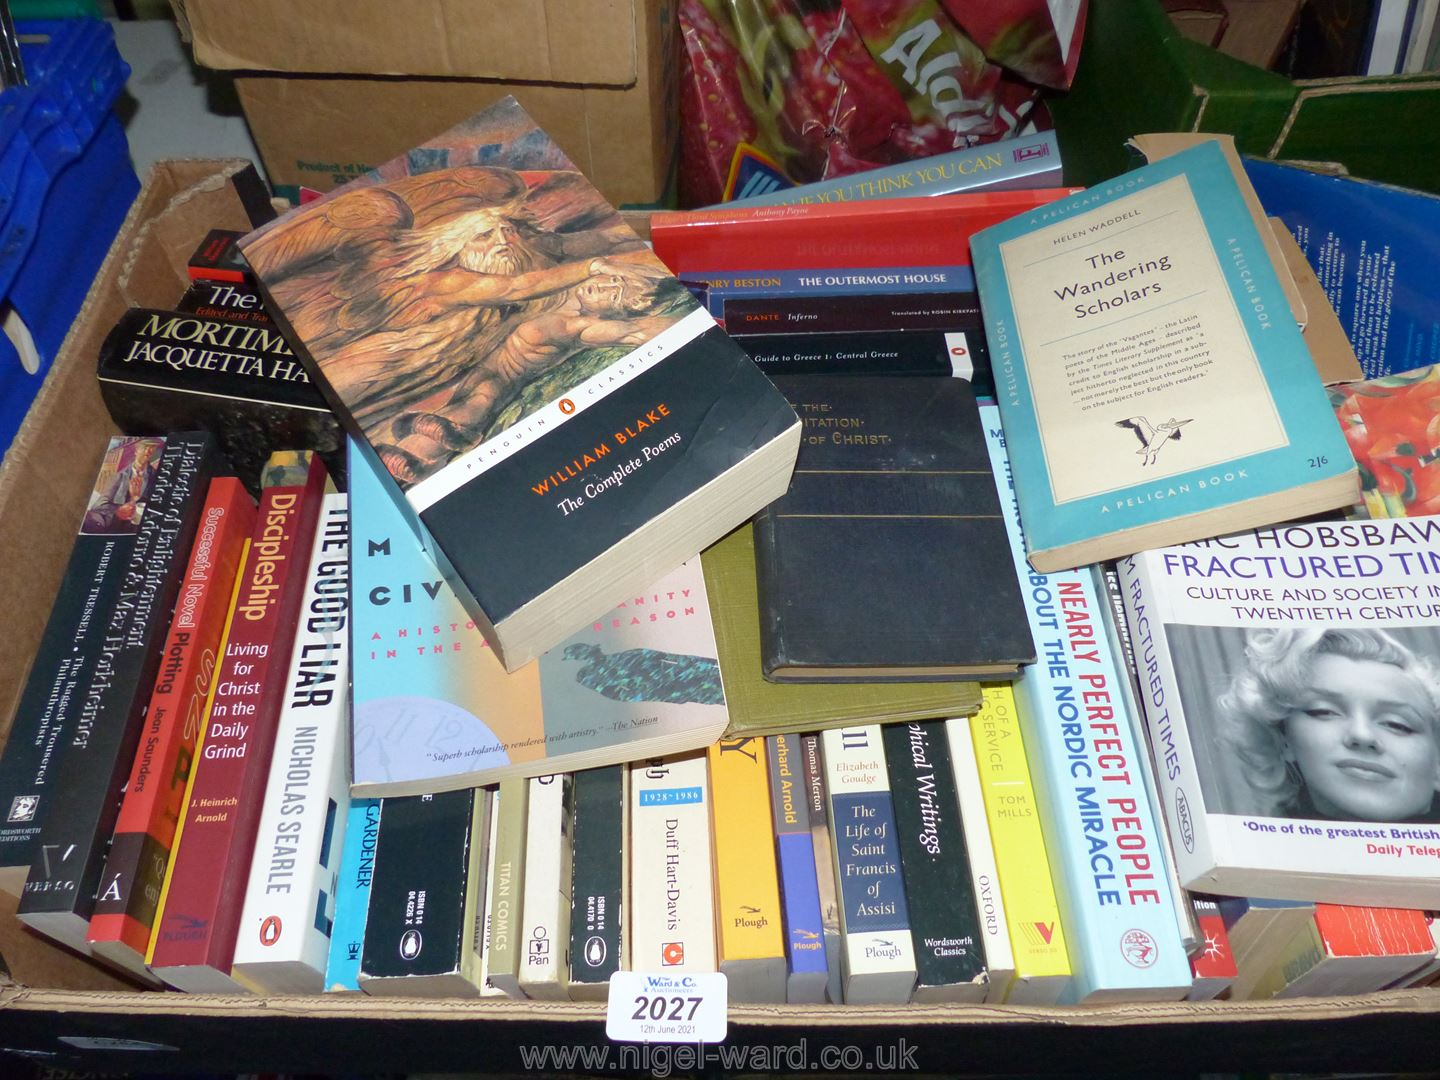 A box of books including How to change the World, Guardians of Power, The Good Liar, etc.